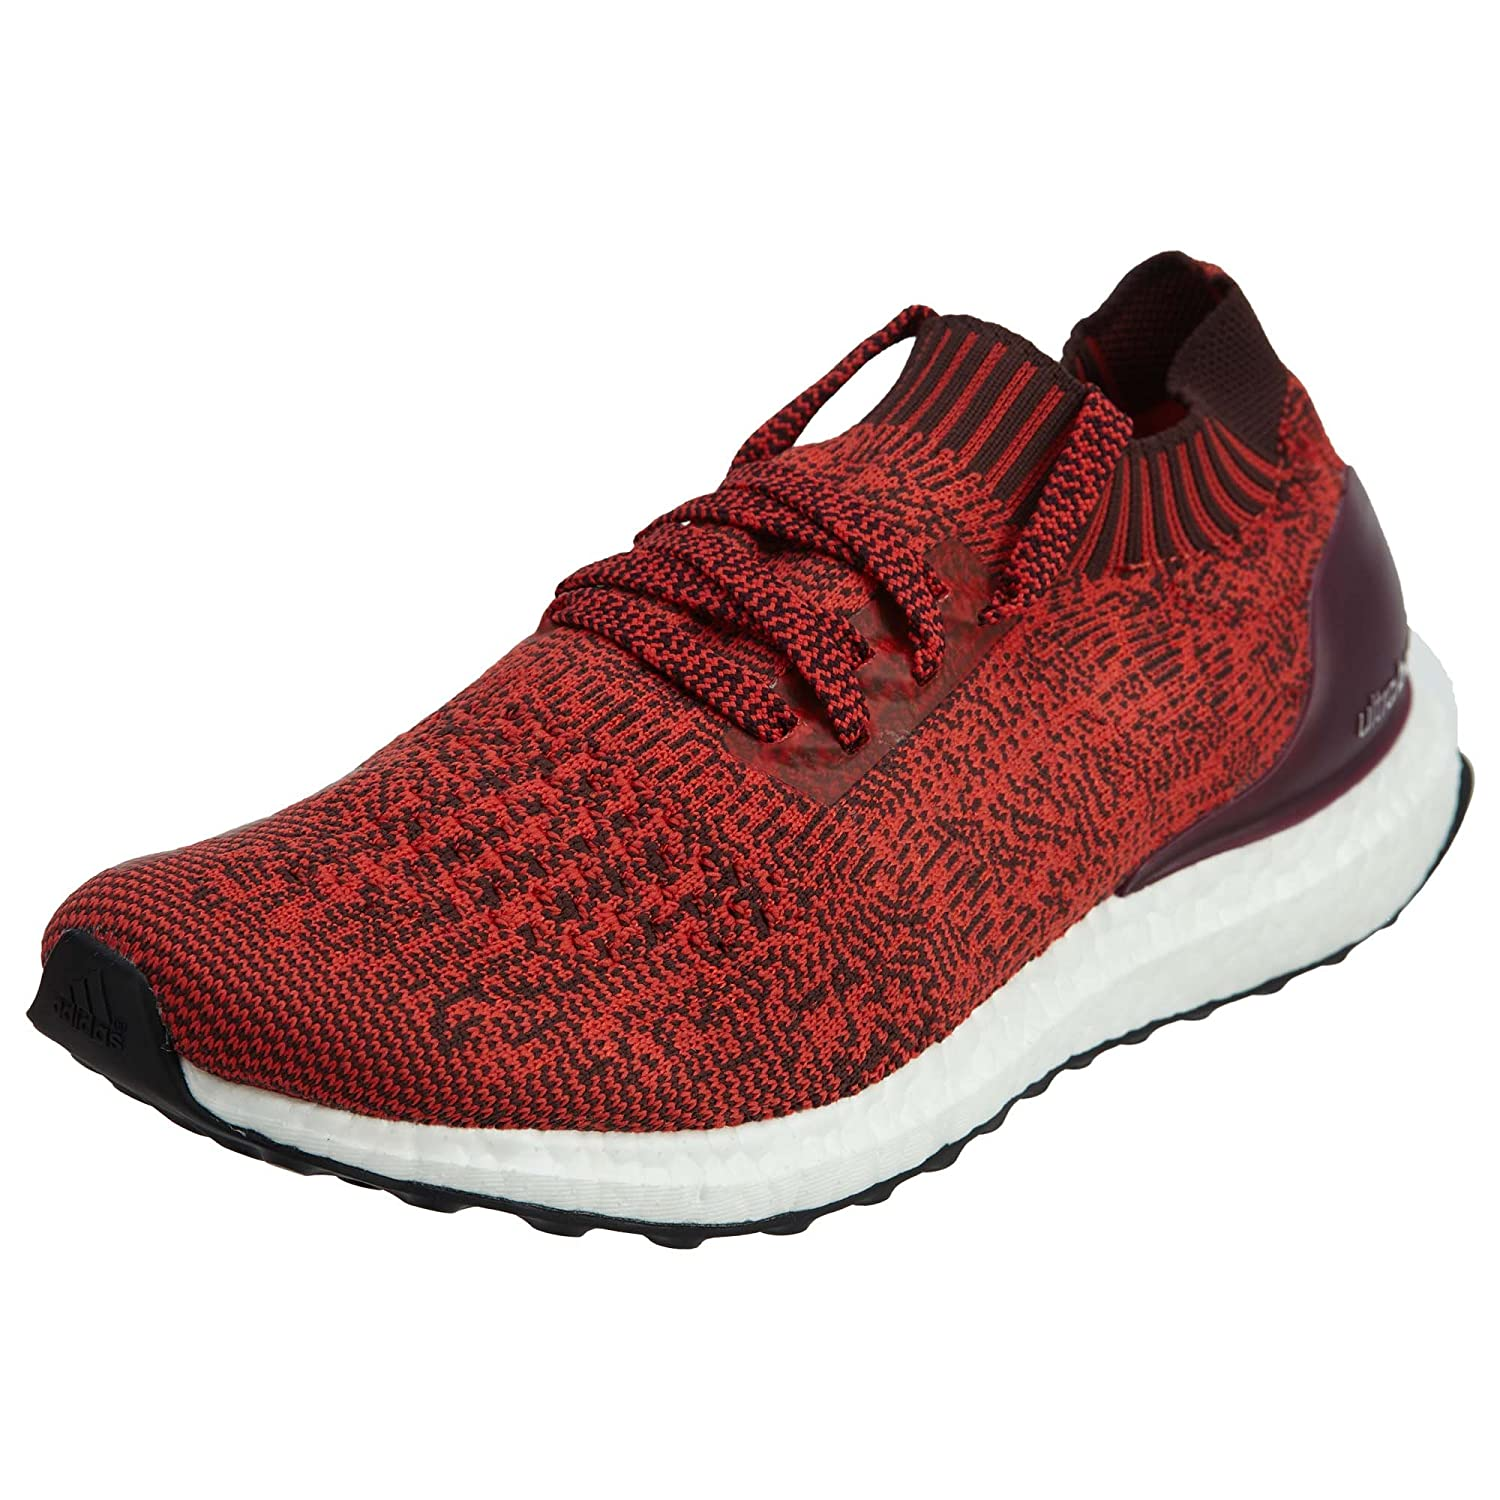 adidas Ultraboost Uncaged - BY2554 B073RR4MKB 8.5 D(M) US|Dark Burgundy/Tactile Red